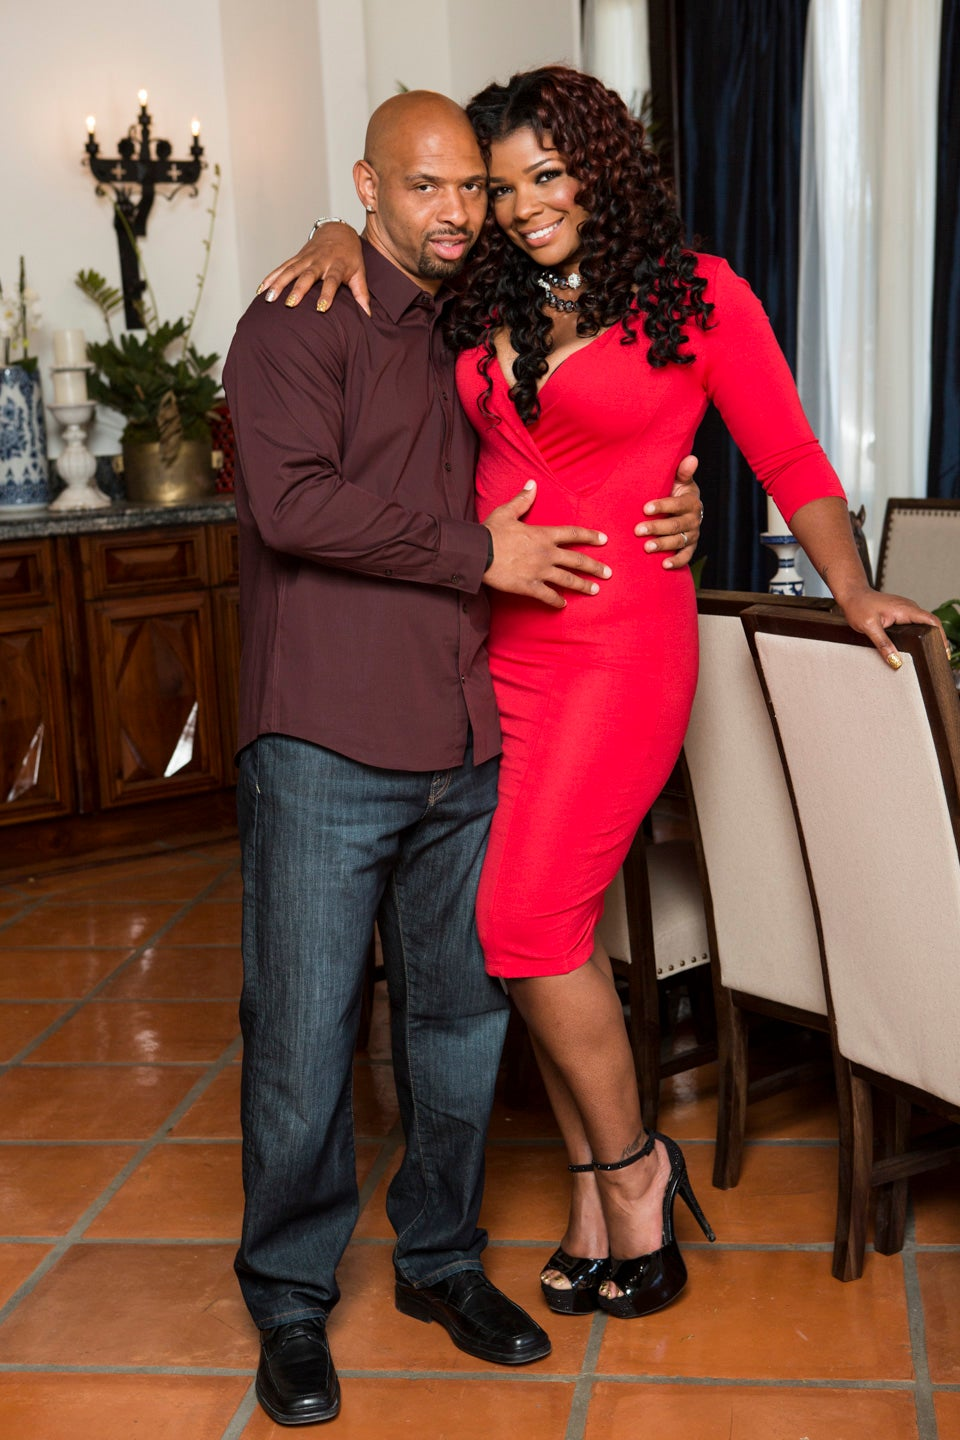 Syleena Johnson and Husband Reveal Motives Behind Going to 'Marriage Boot Camp'